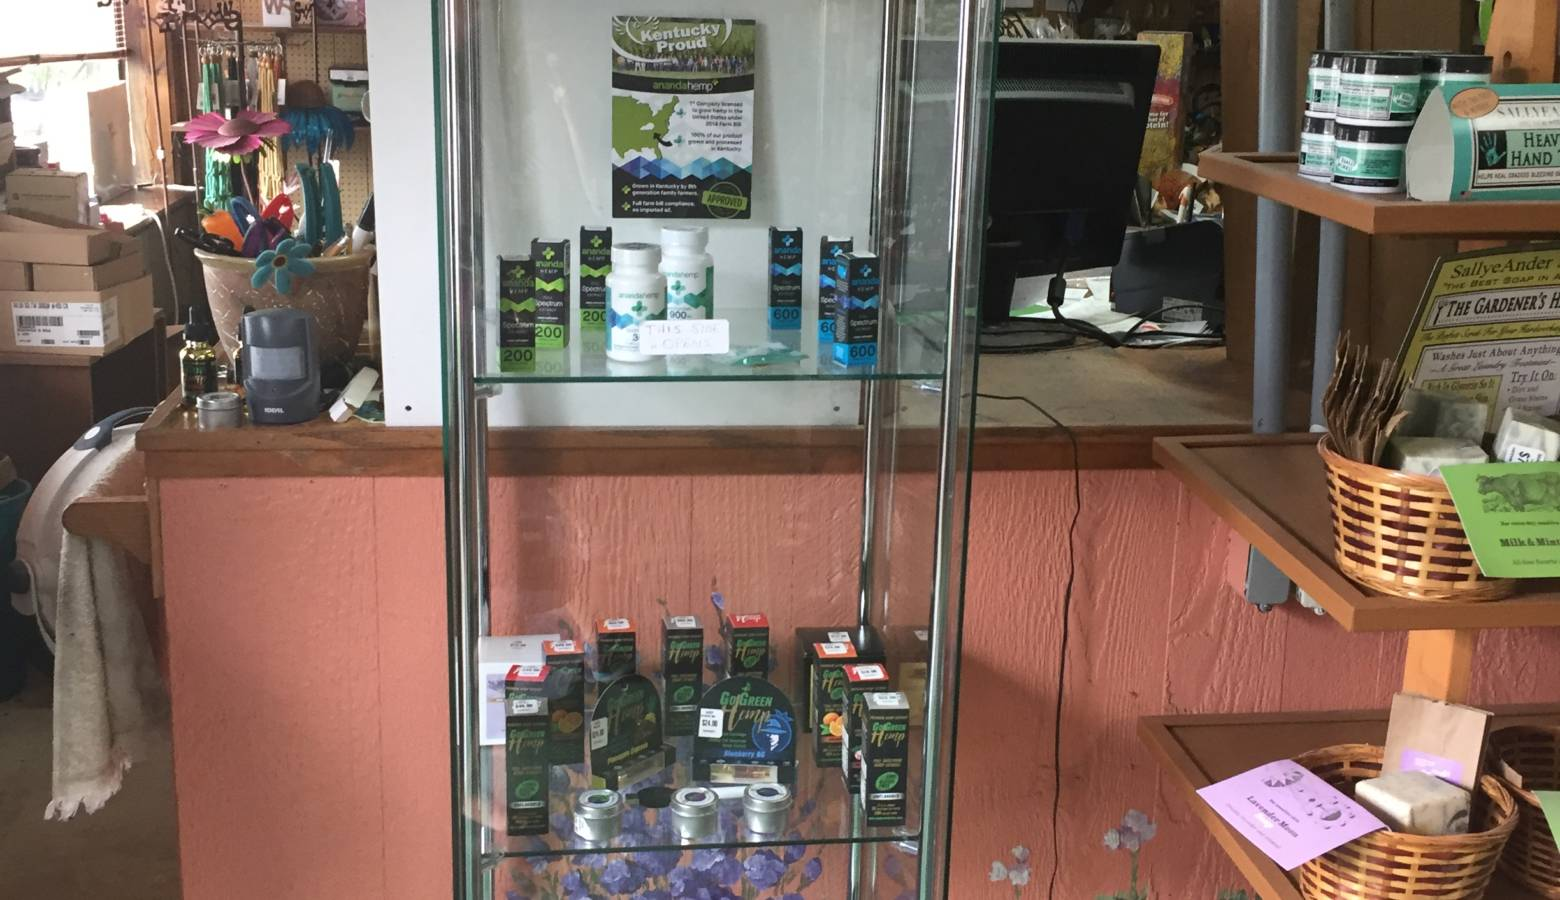 CBD products are sold at Davidson Greenhouse in Crawfordsville. (Jill Sheridan/IPB News)